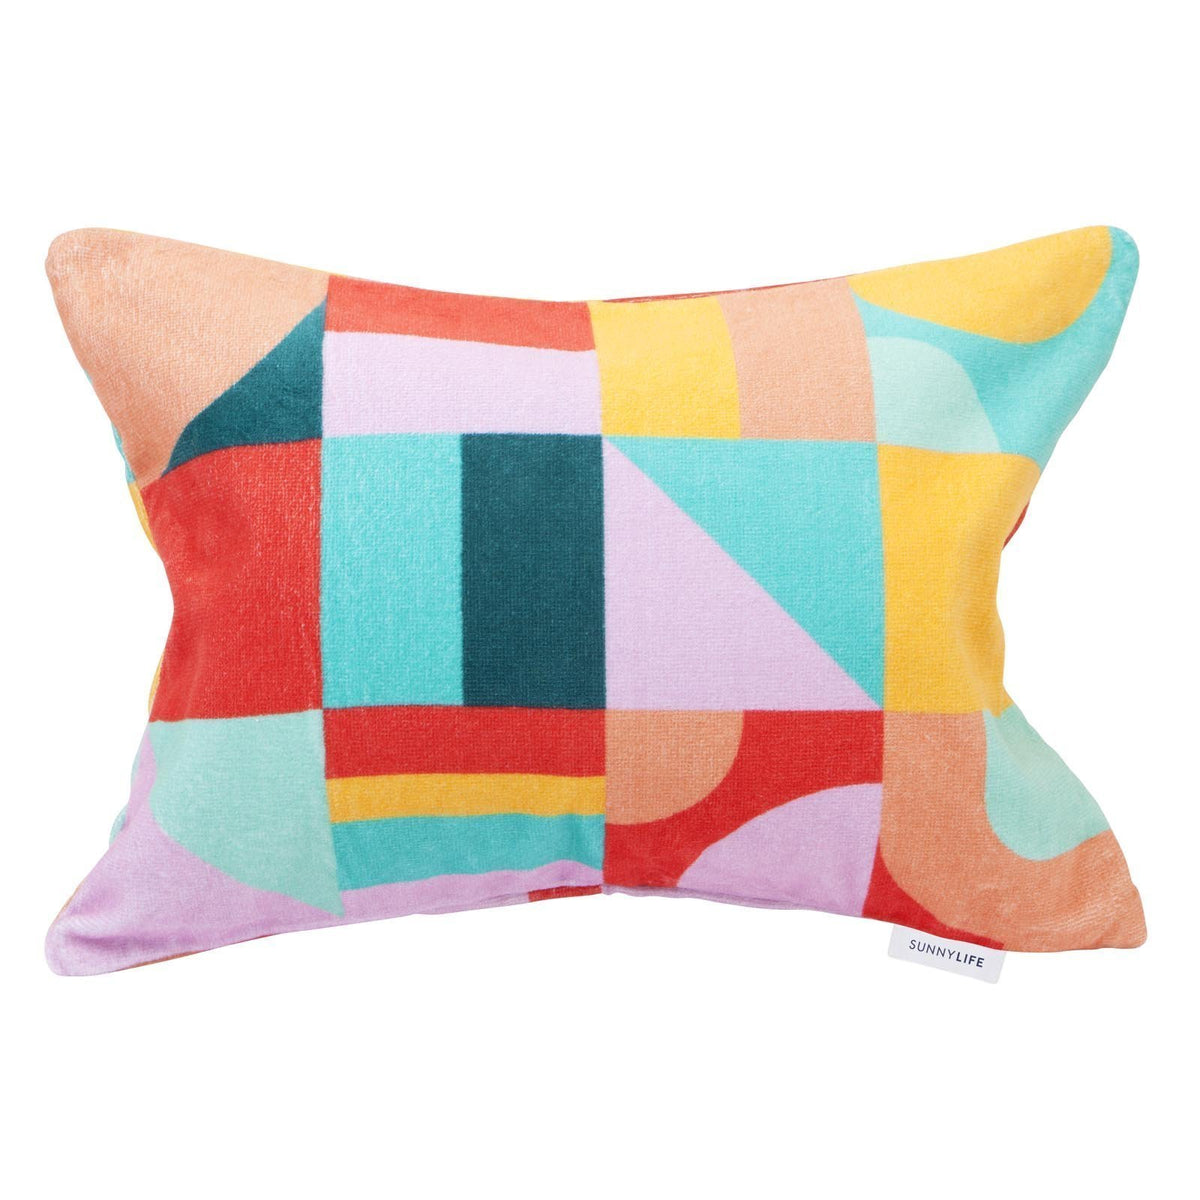 Sunnylife | Beach Pillow | Islabomba